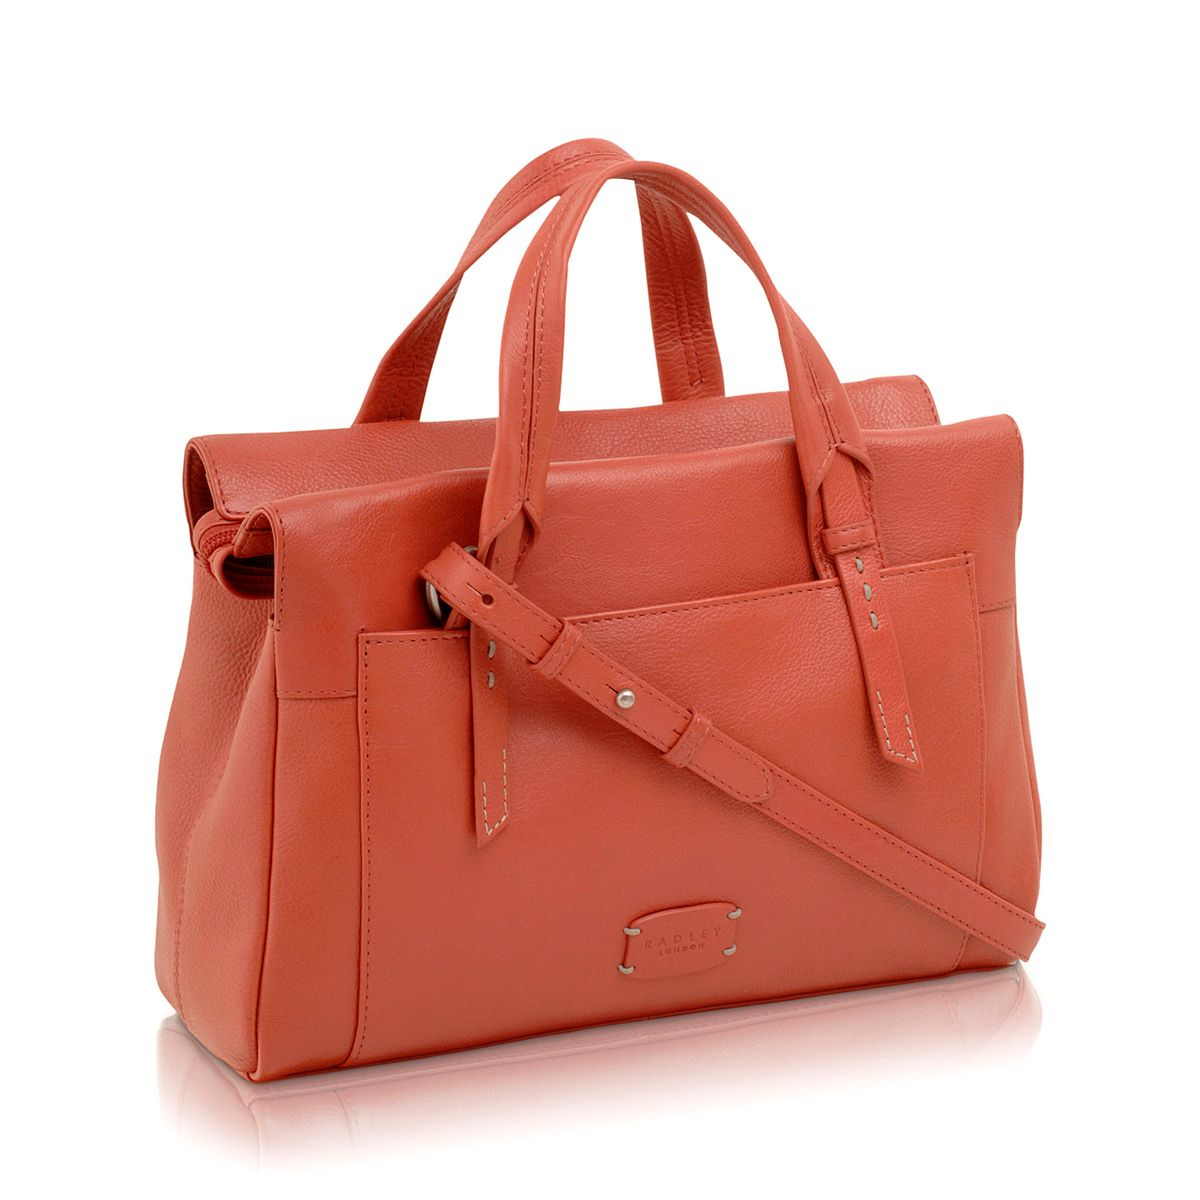 Barnsley coral crossbody medium leather tote bag